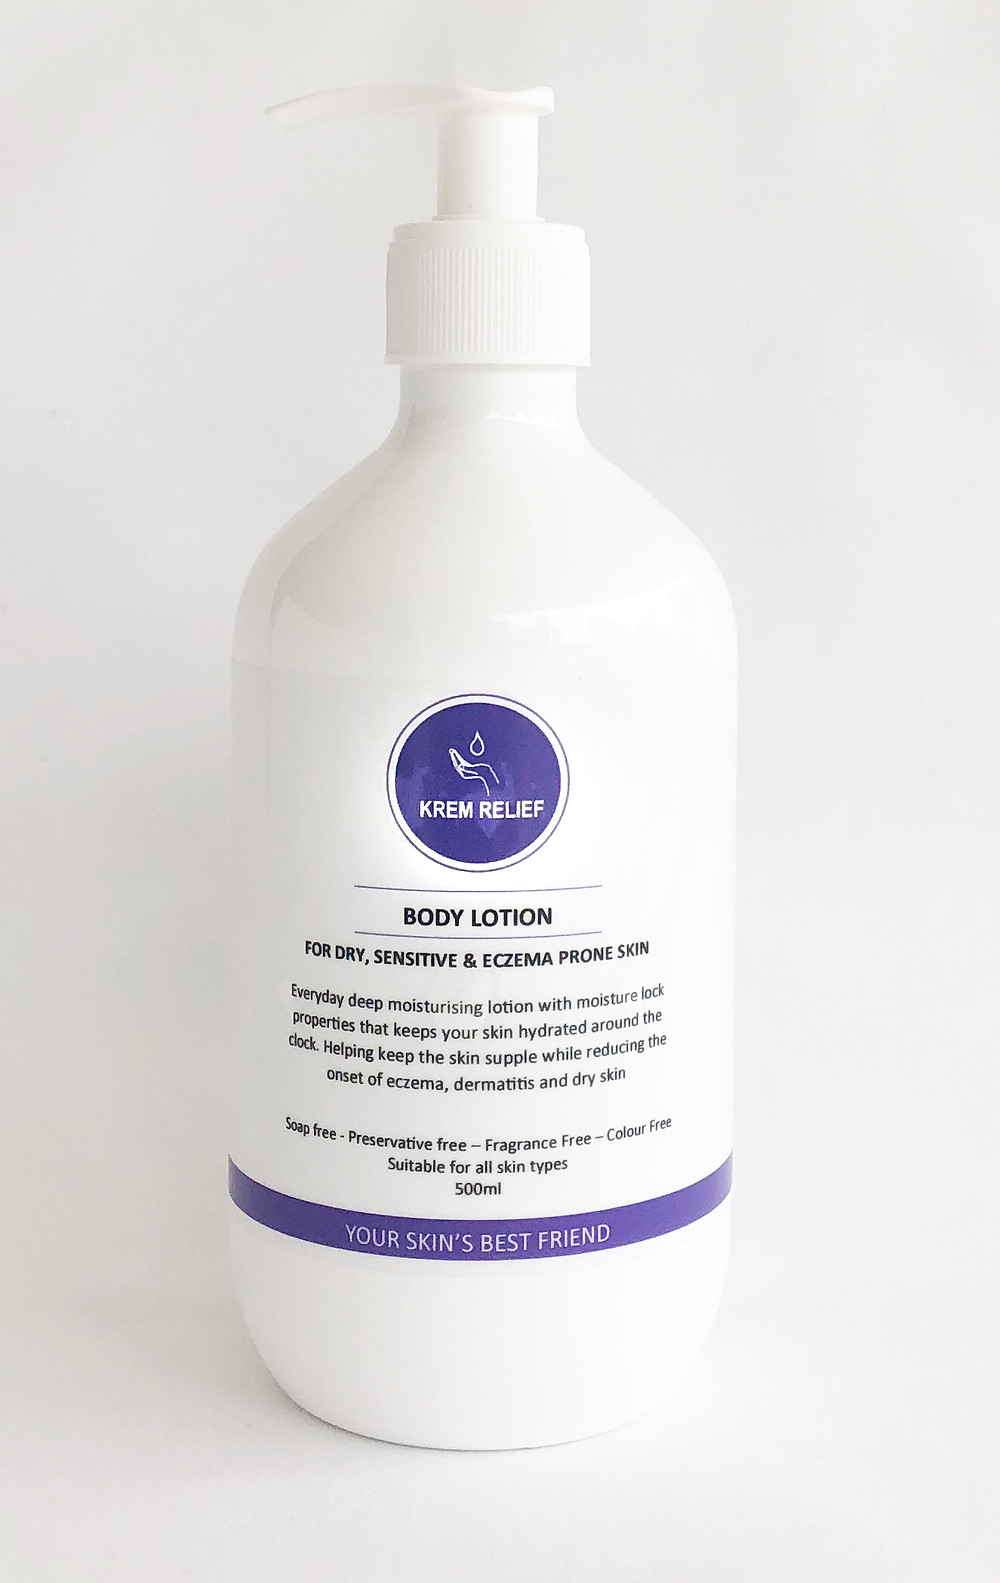 bottle of Krem Relief Body Lotion on white background